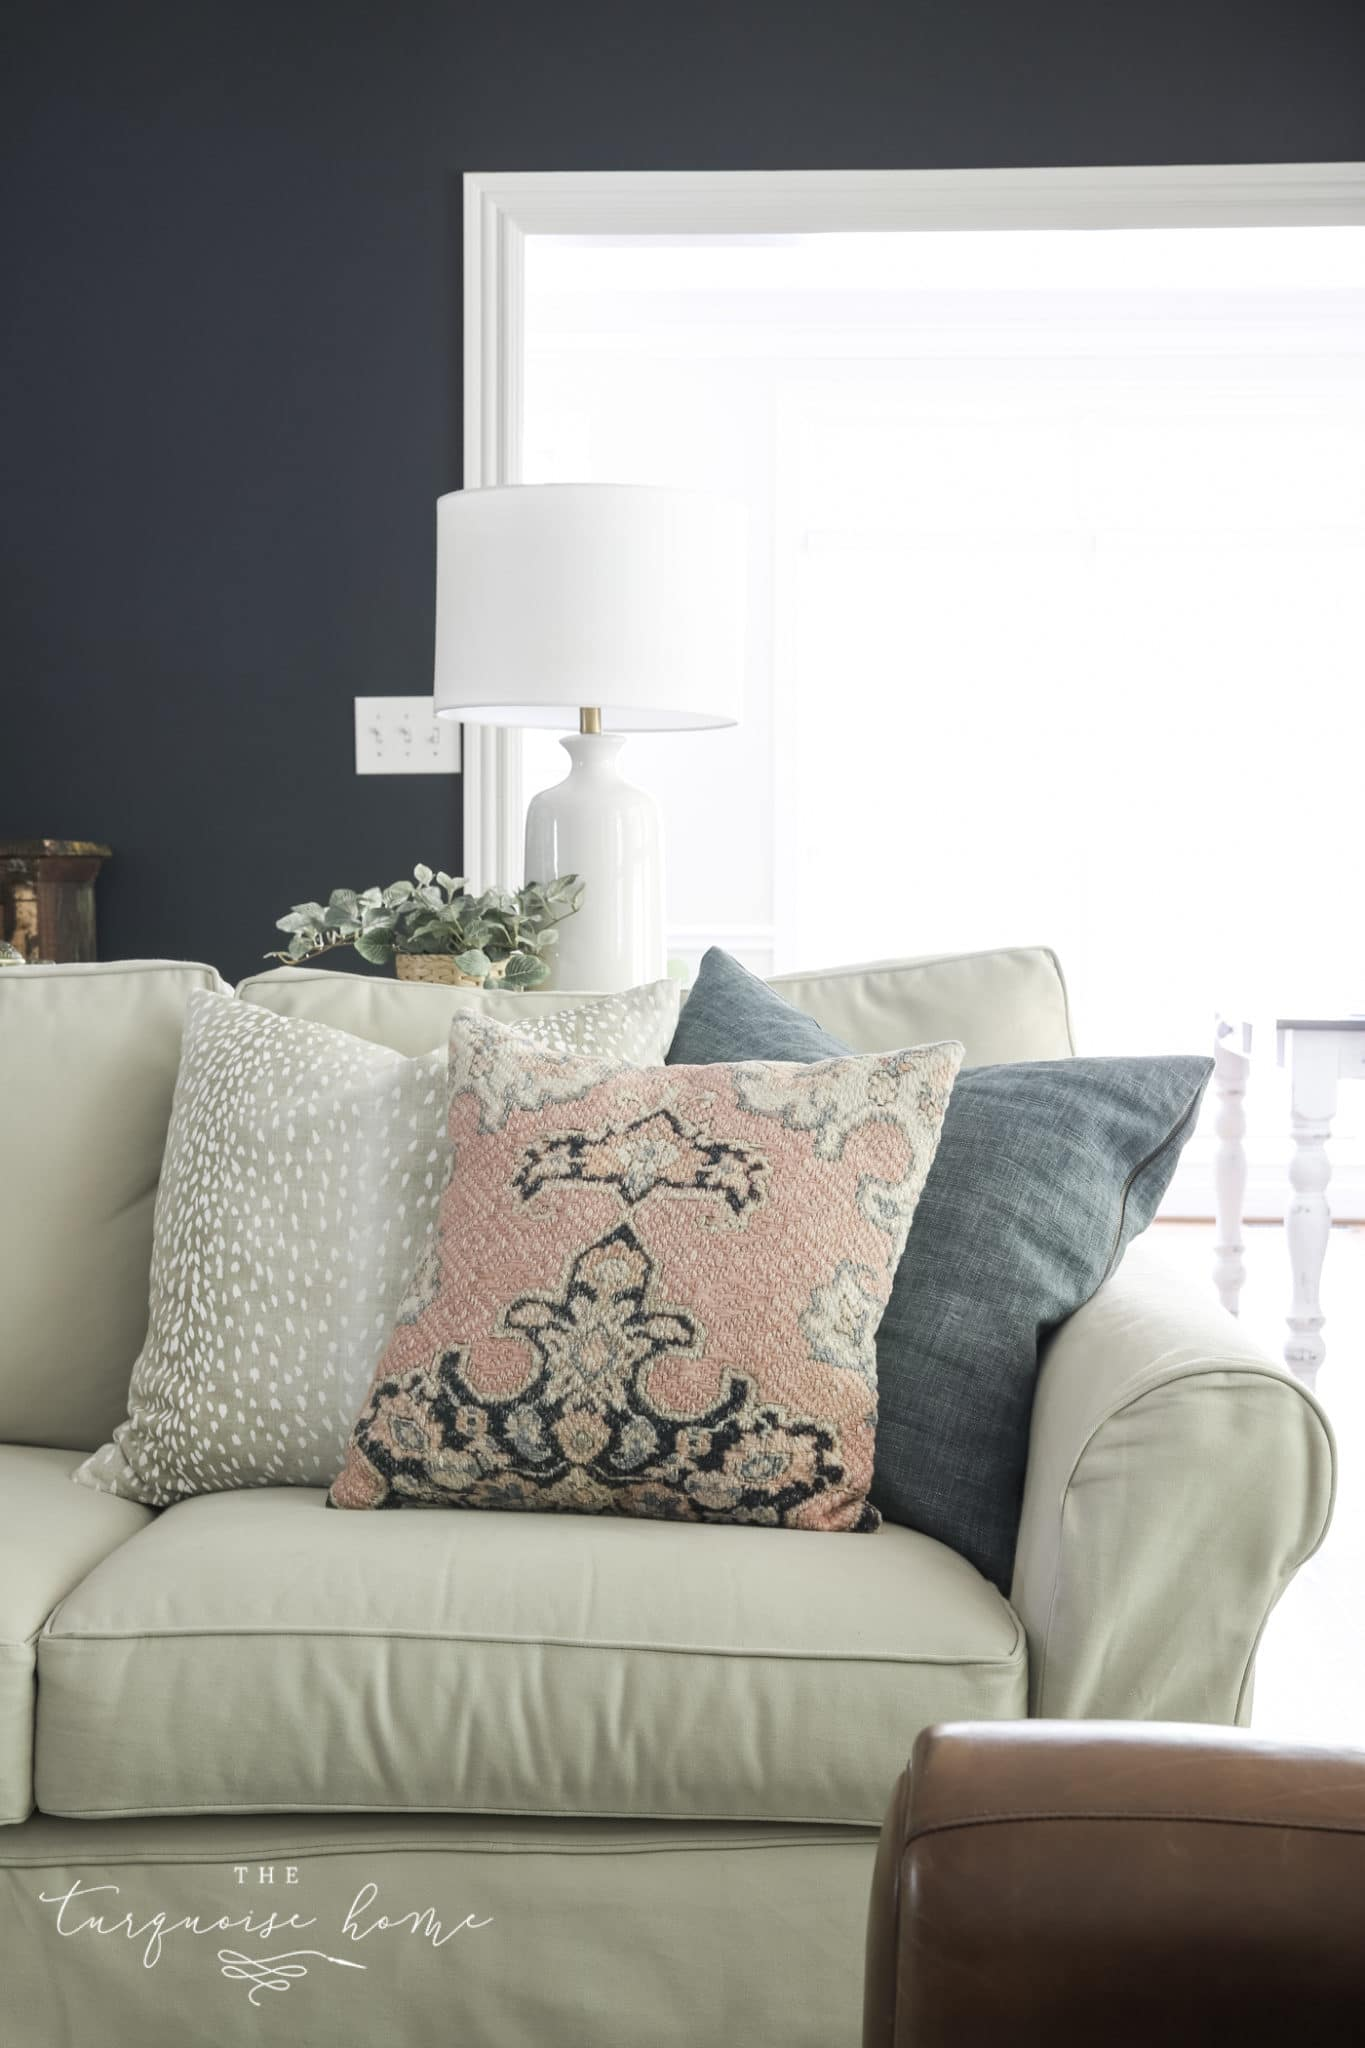 Home Decor 101: How To Choose And Style Sofa Pillows | The Turquoise Home